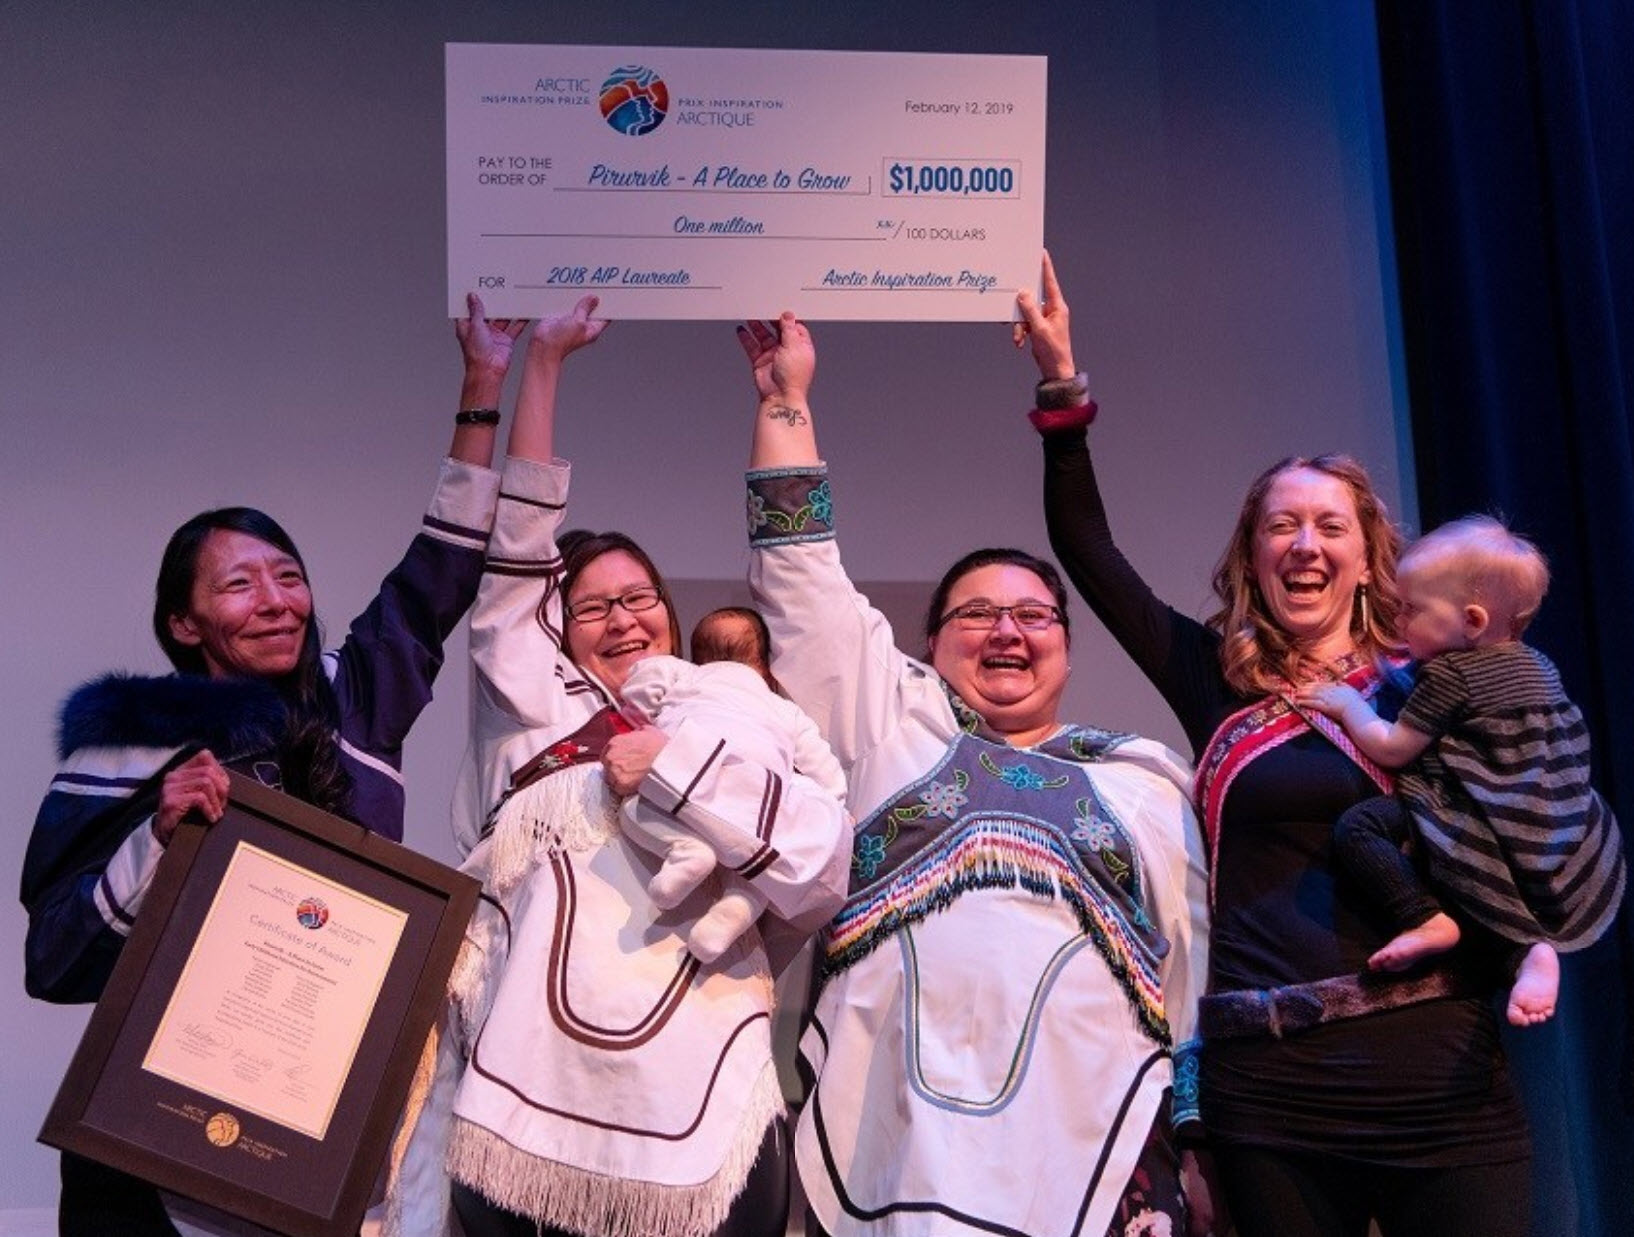 Photo Credit: Nunatsiaq News